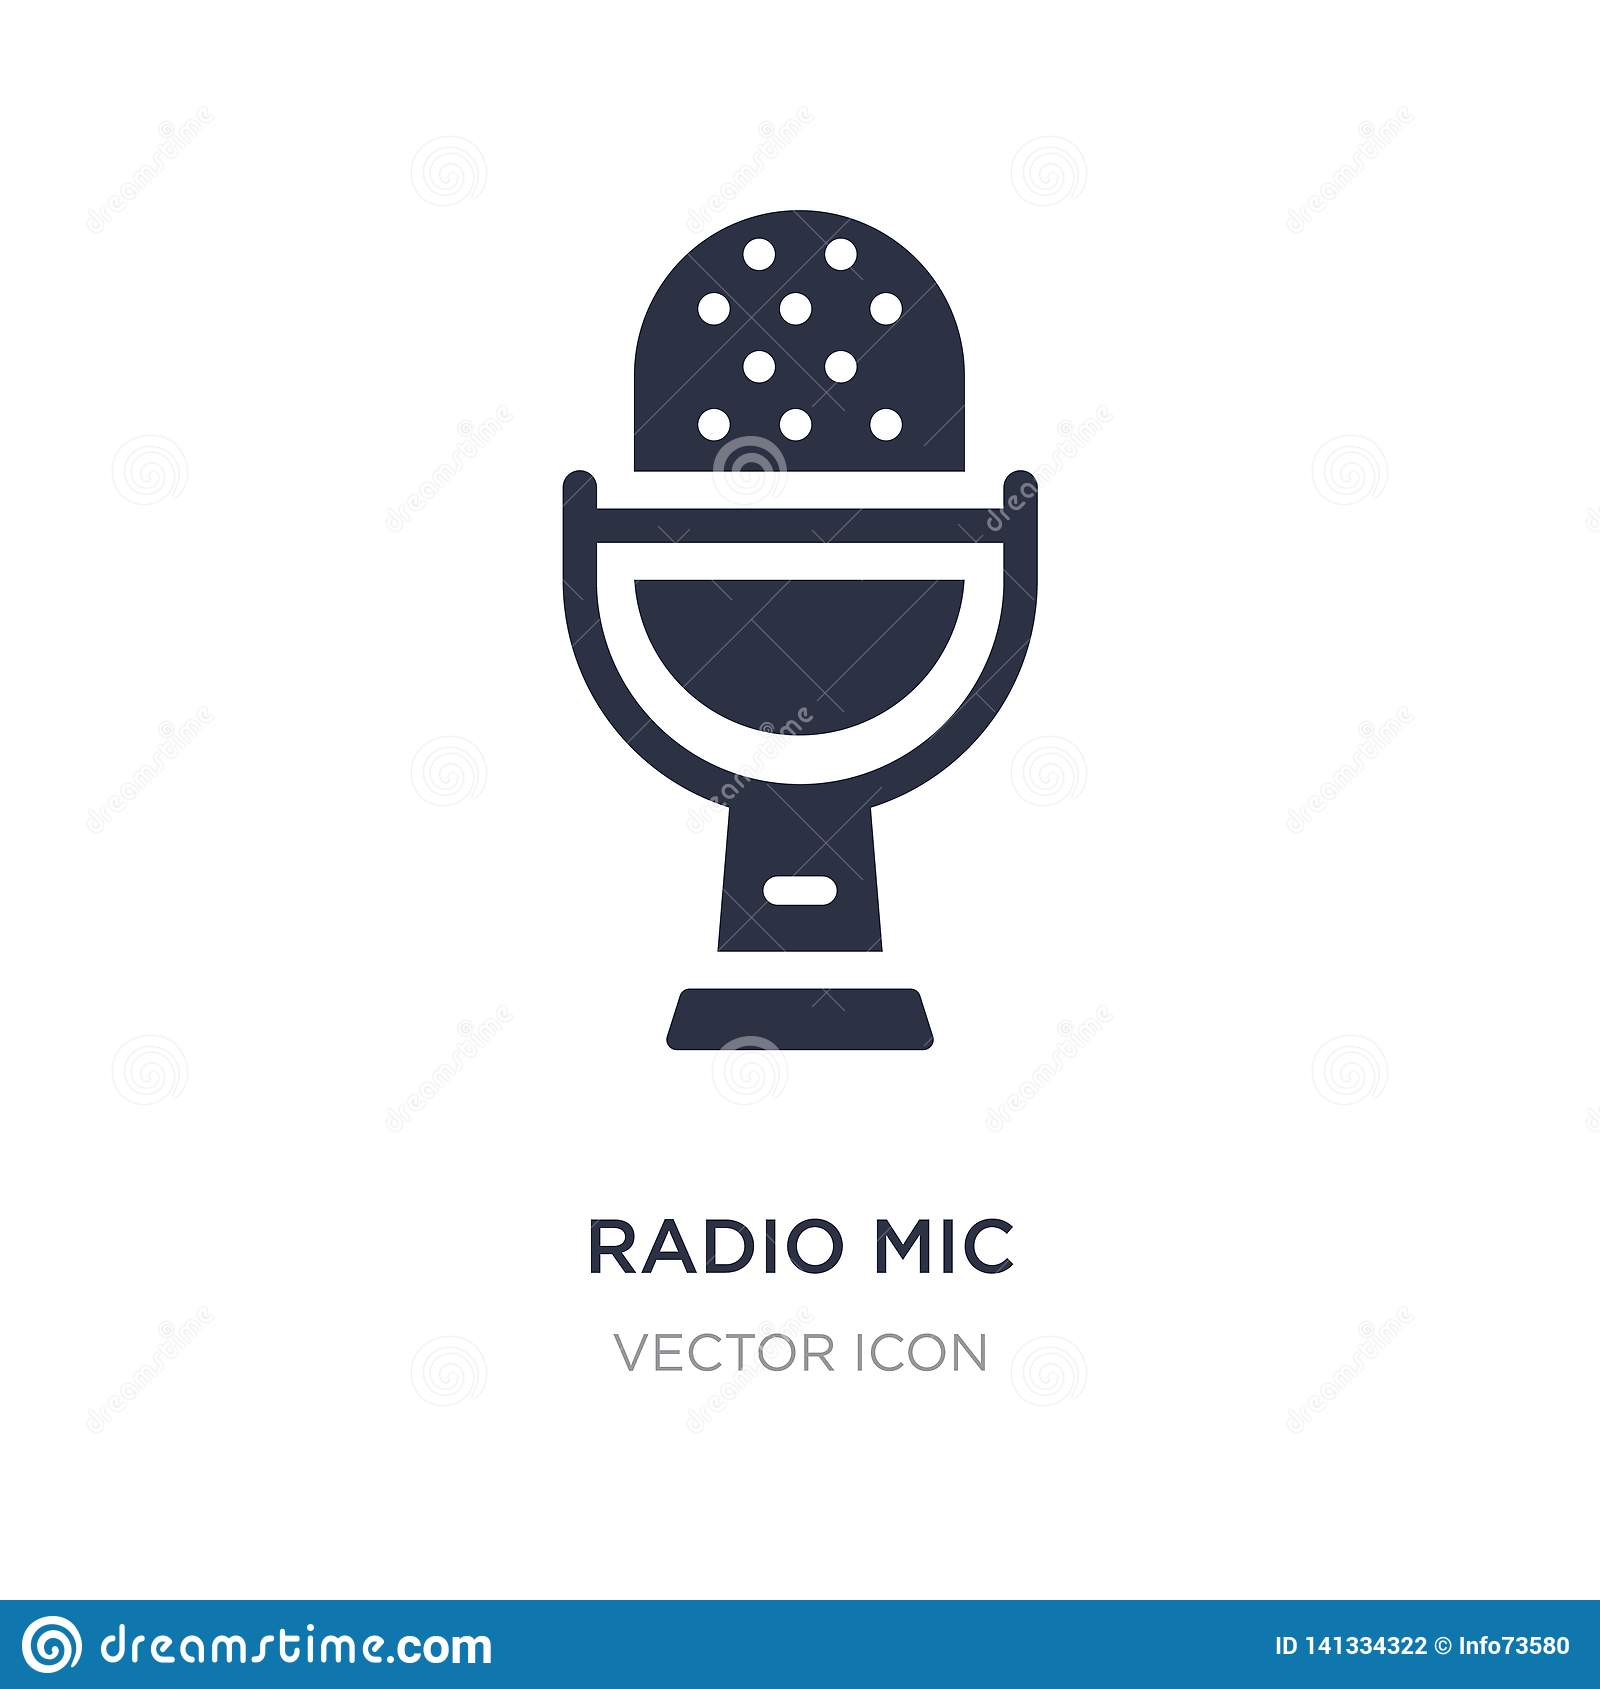 radio mic icon on white background. Simple element illustration from Hardware concept